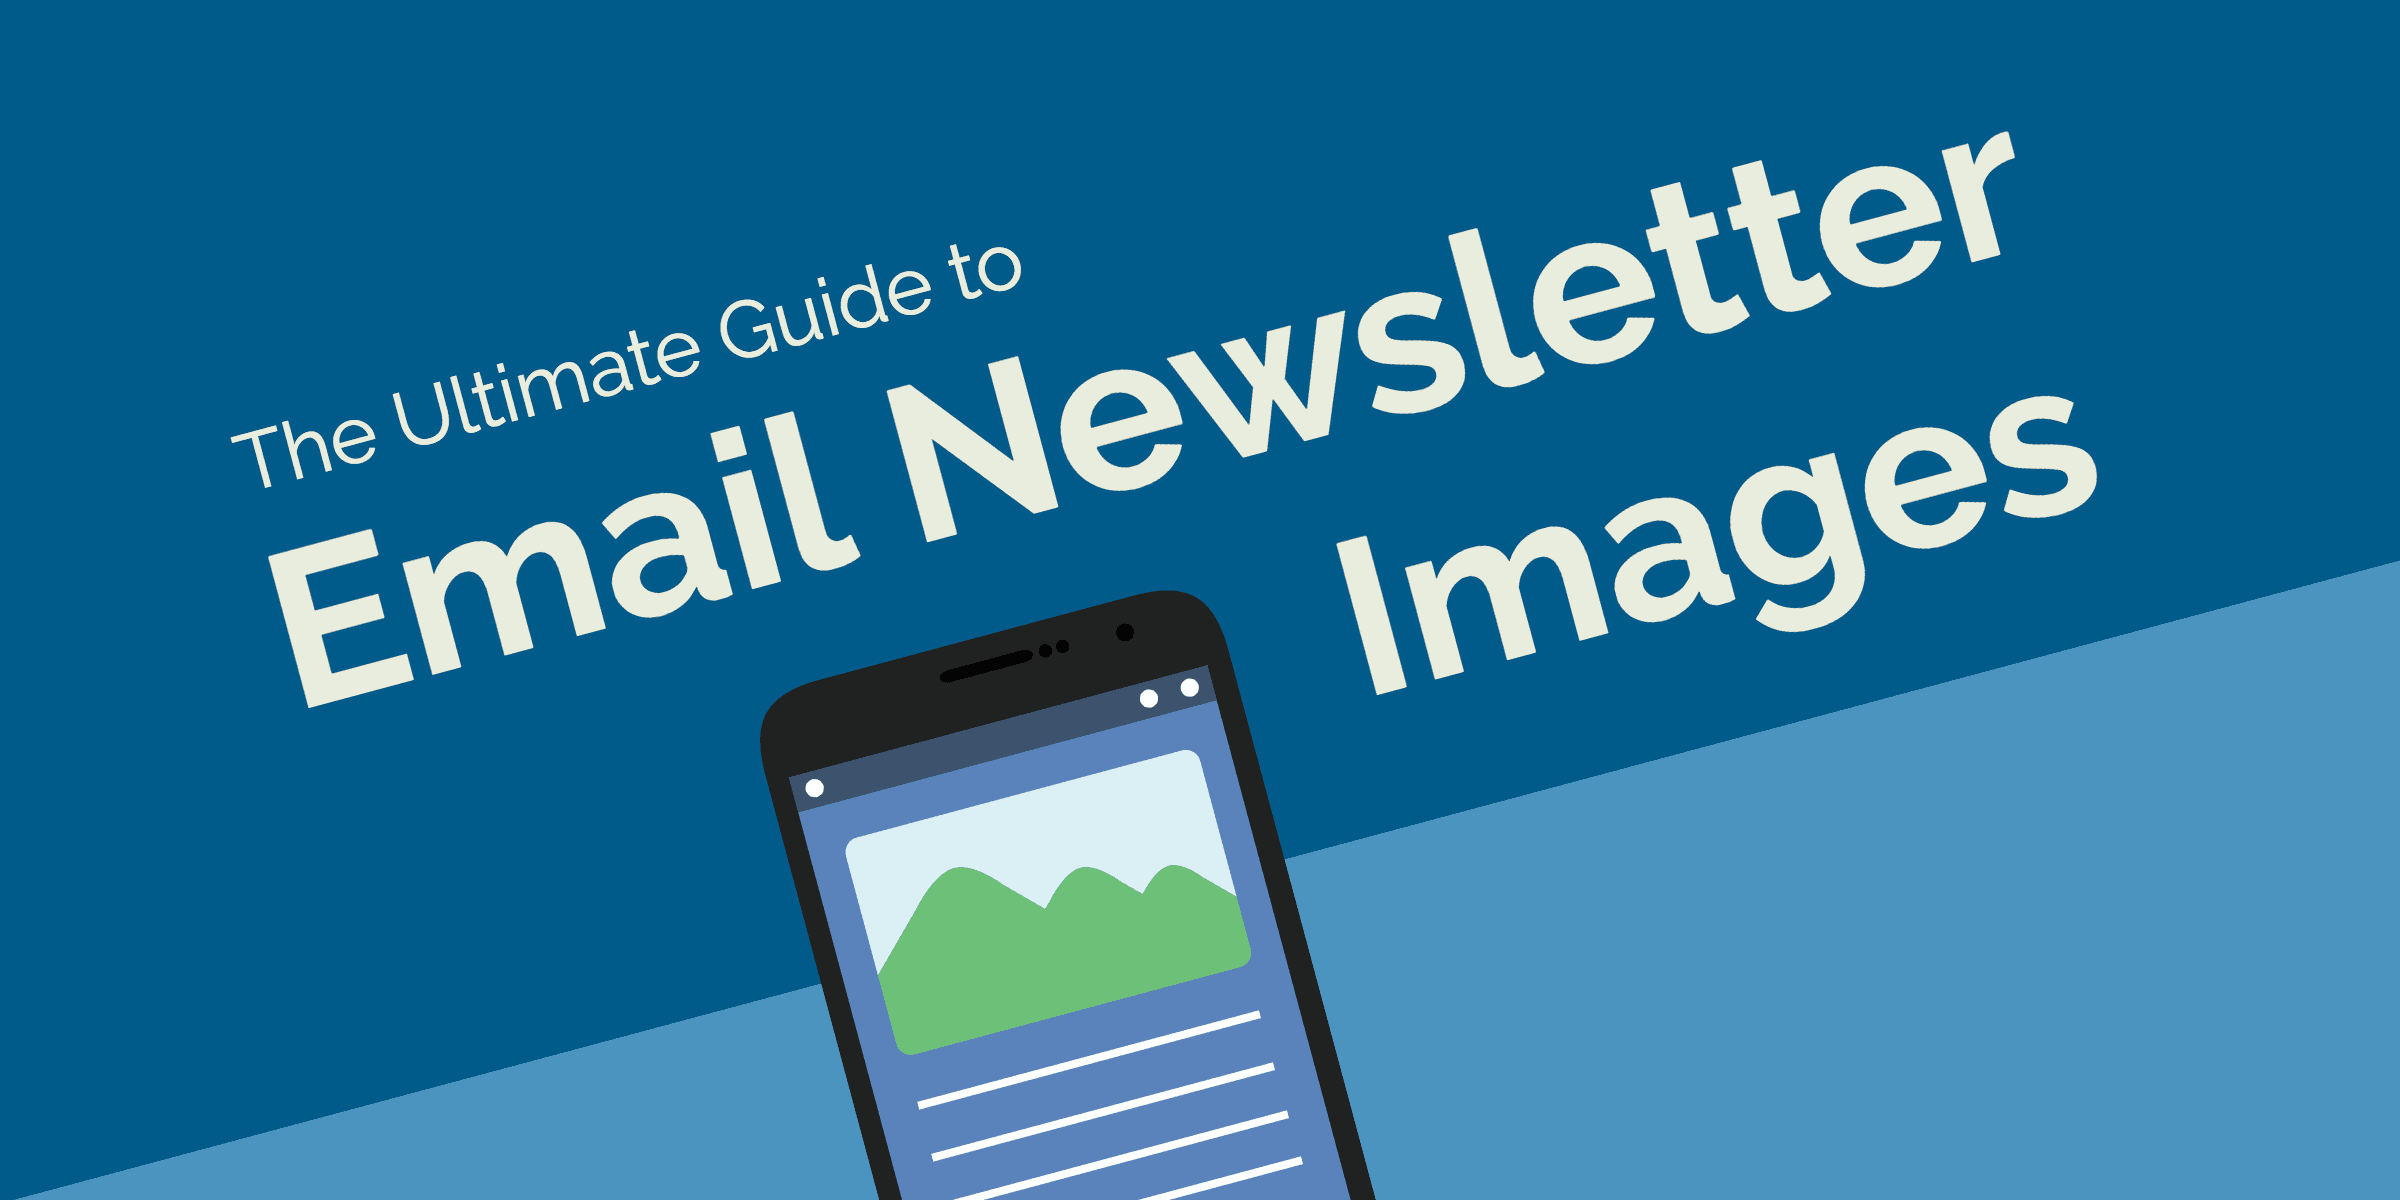 Email Newsletter Images